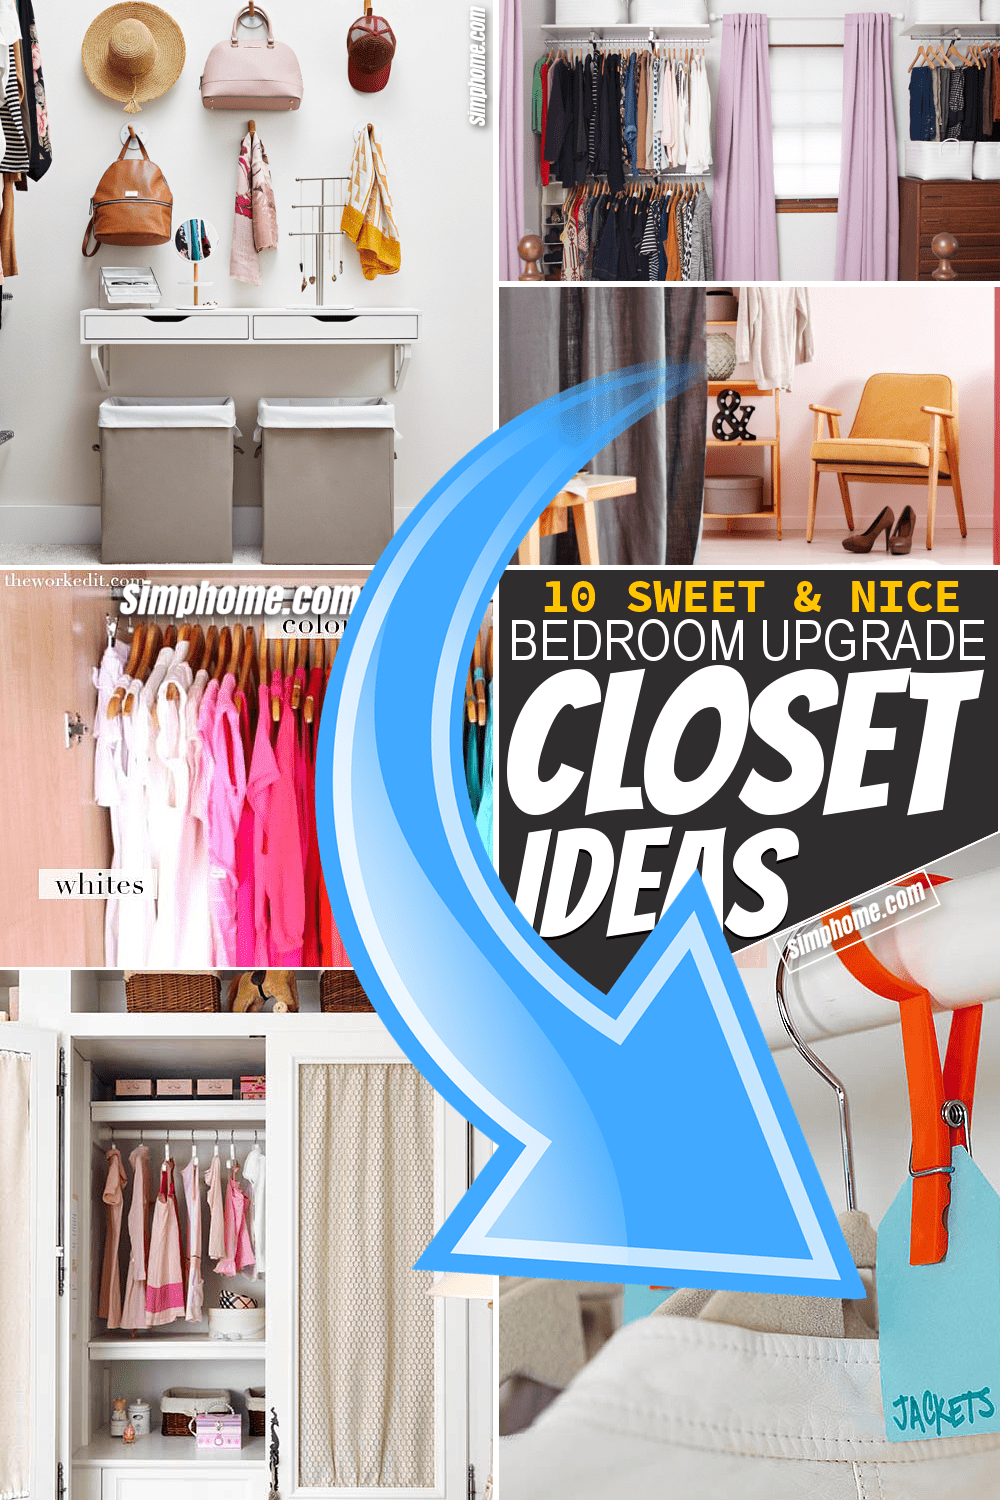 Simphome.com 10 bedroom closet ideas featured image